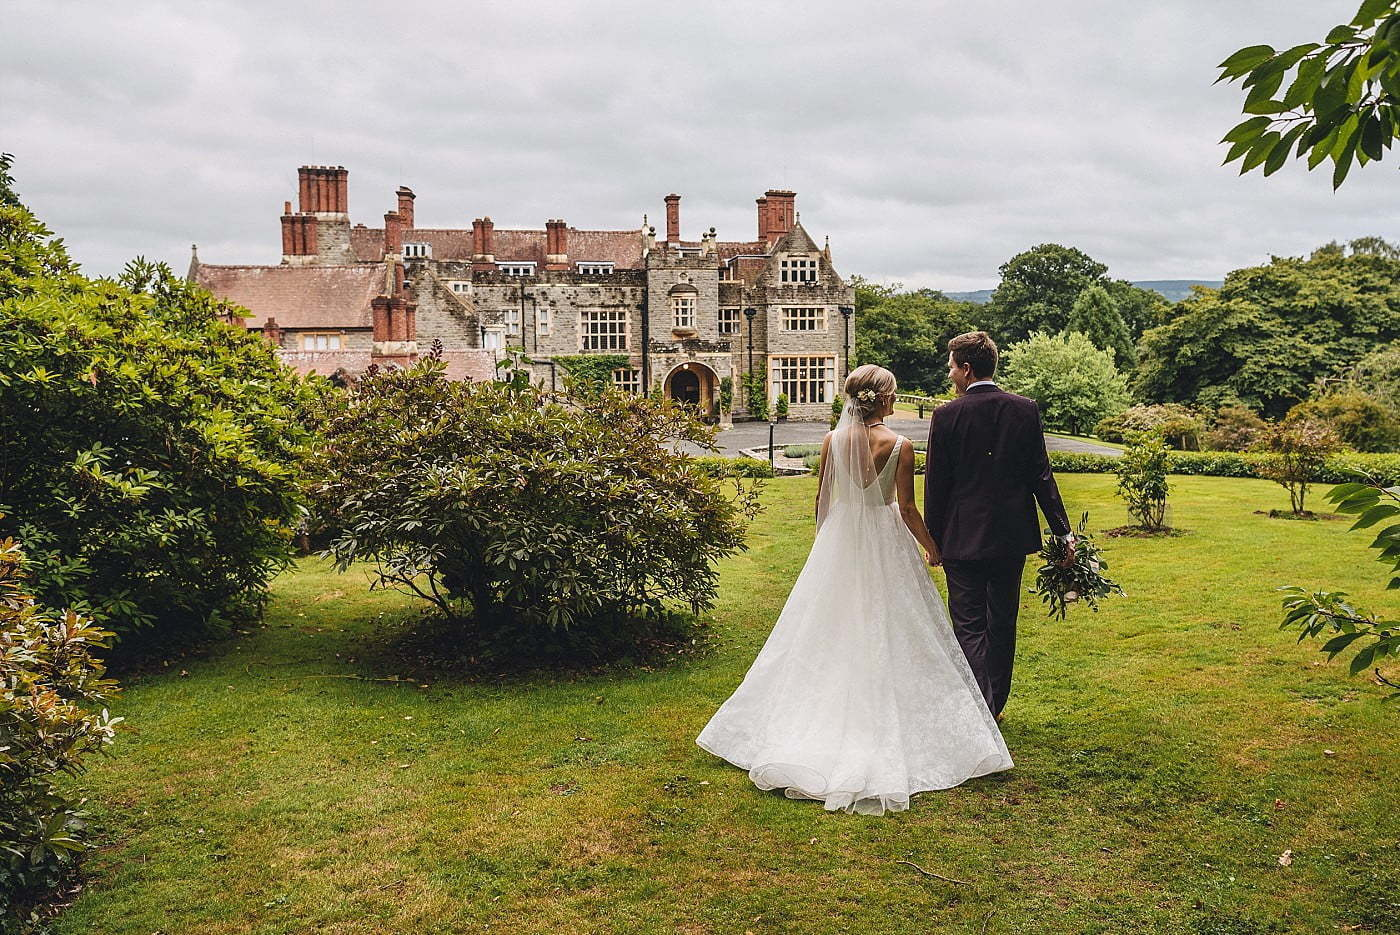 Whitney Court Hereford wedding venue